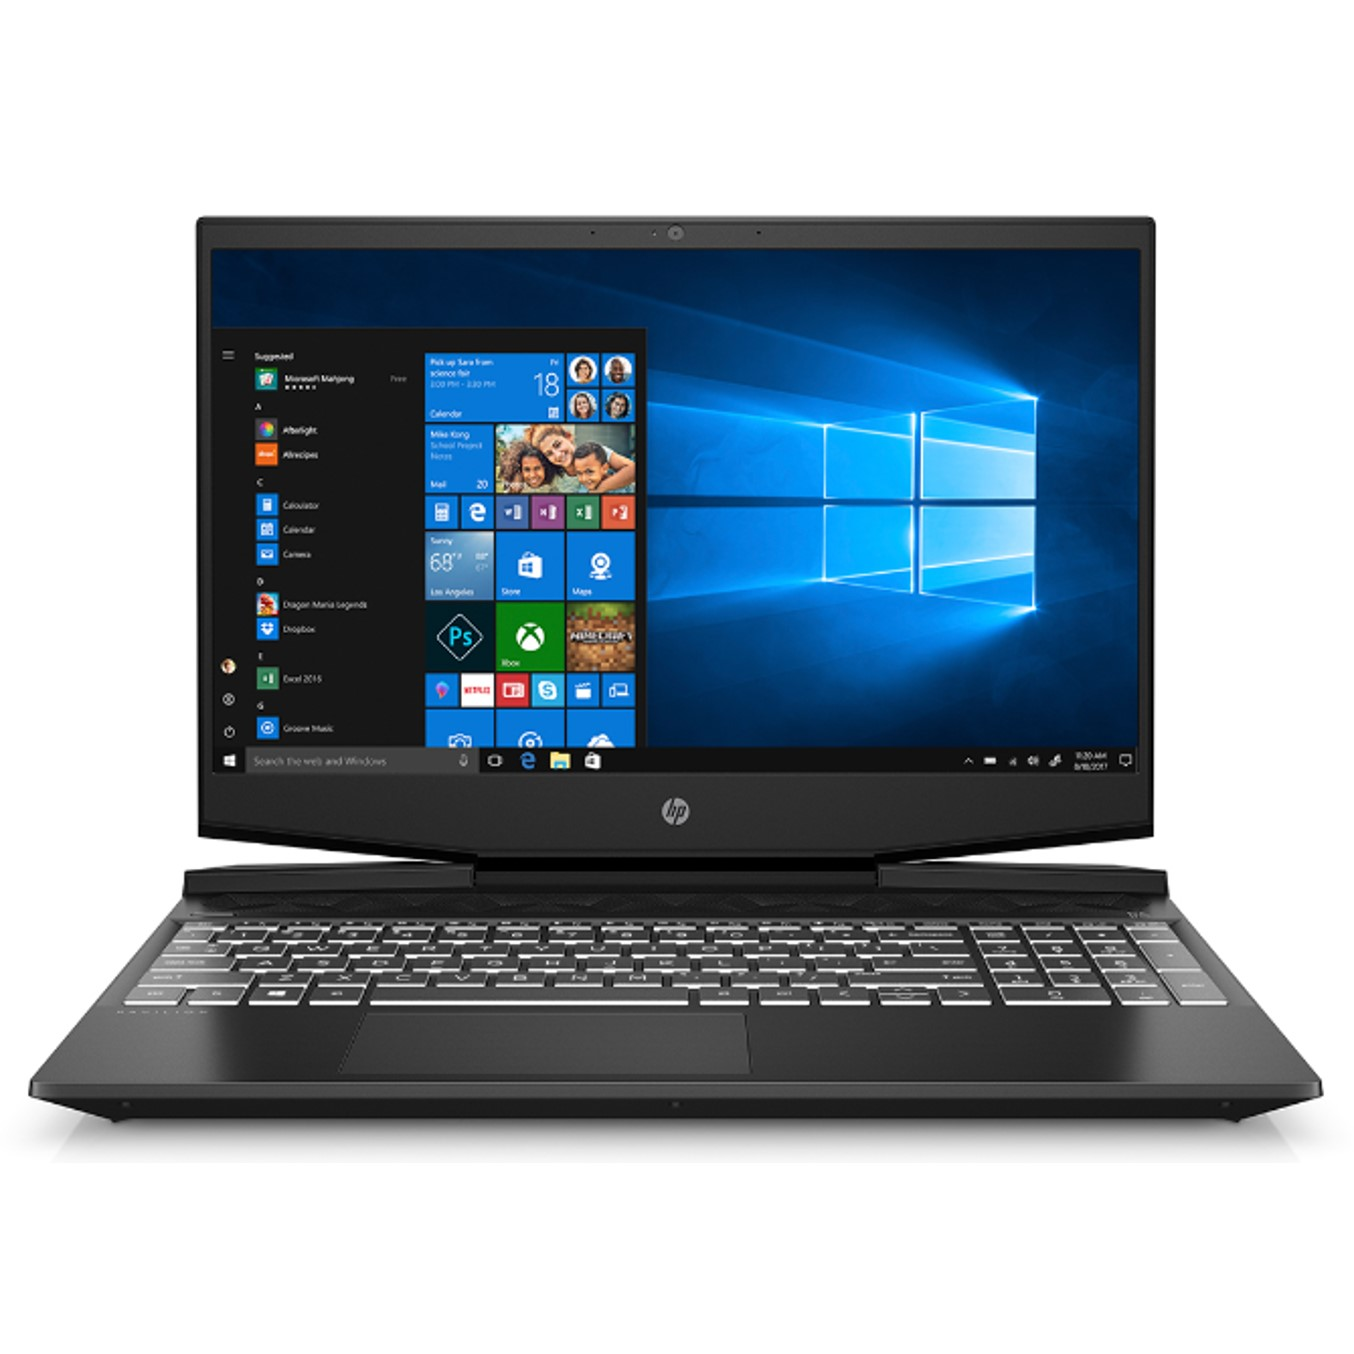 Portatil Hp Pavilion Gaming 15-dk0002ns I5-9300h 15.6 8gb / Ssd512gb / Nvidia Gtx 1650 4gb/ Wifi / Bt / W10 0.0